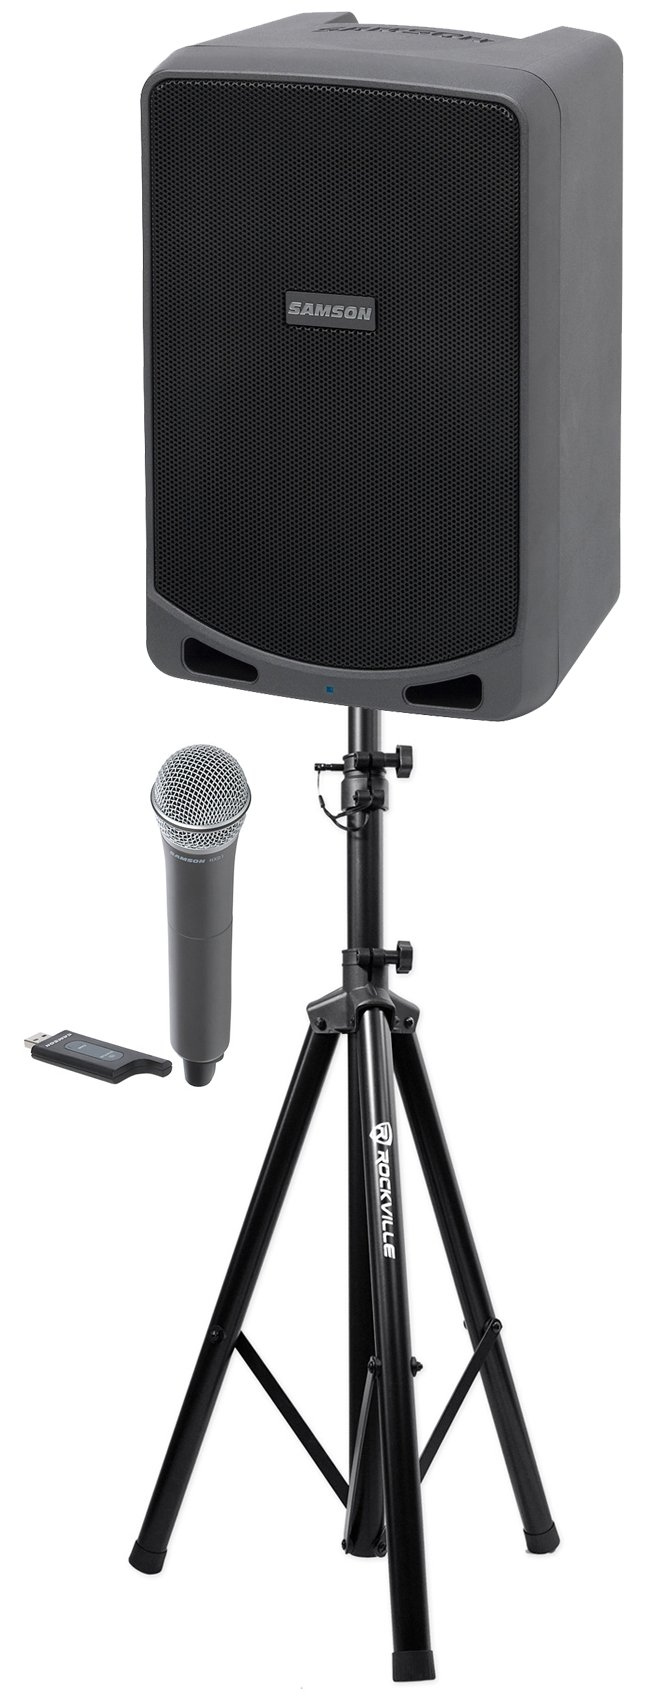 Samson Expedition XP106W 6'' Portable Rechargeable Active PA DJ Speaker+Mic+Stand by Samson Technologies